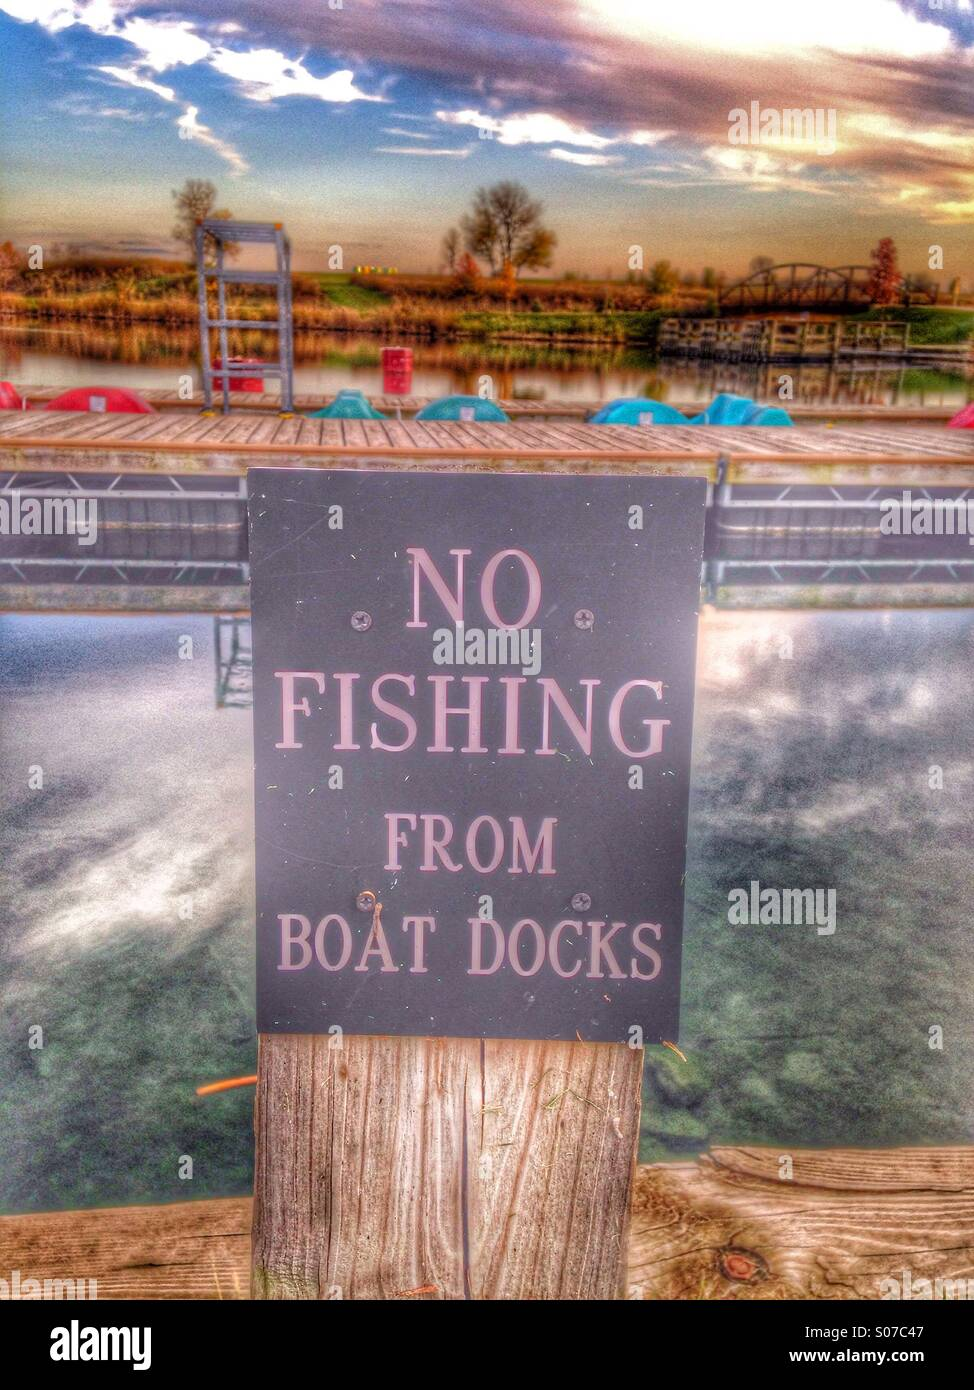 No fishing sign. - Stock Image